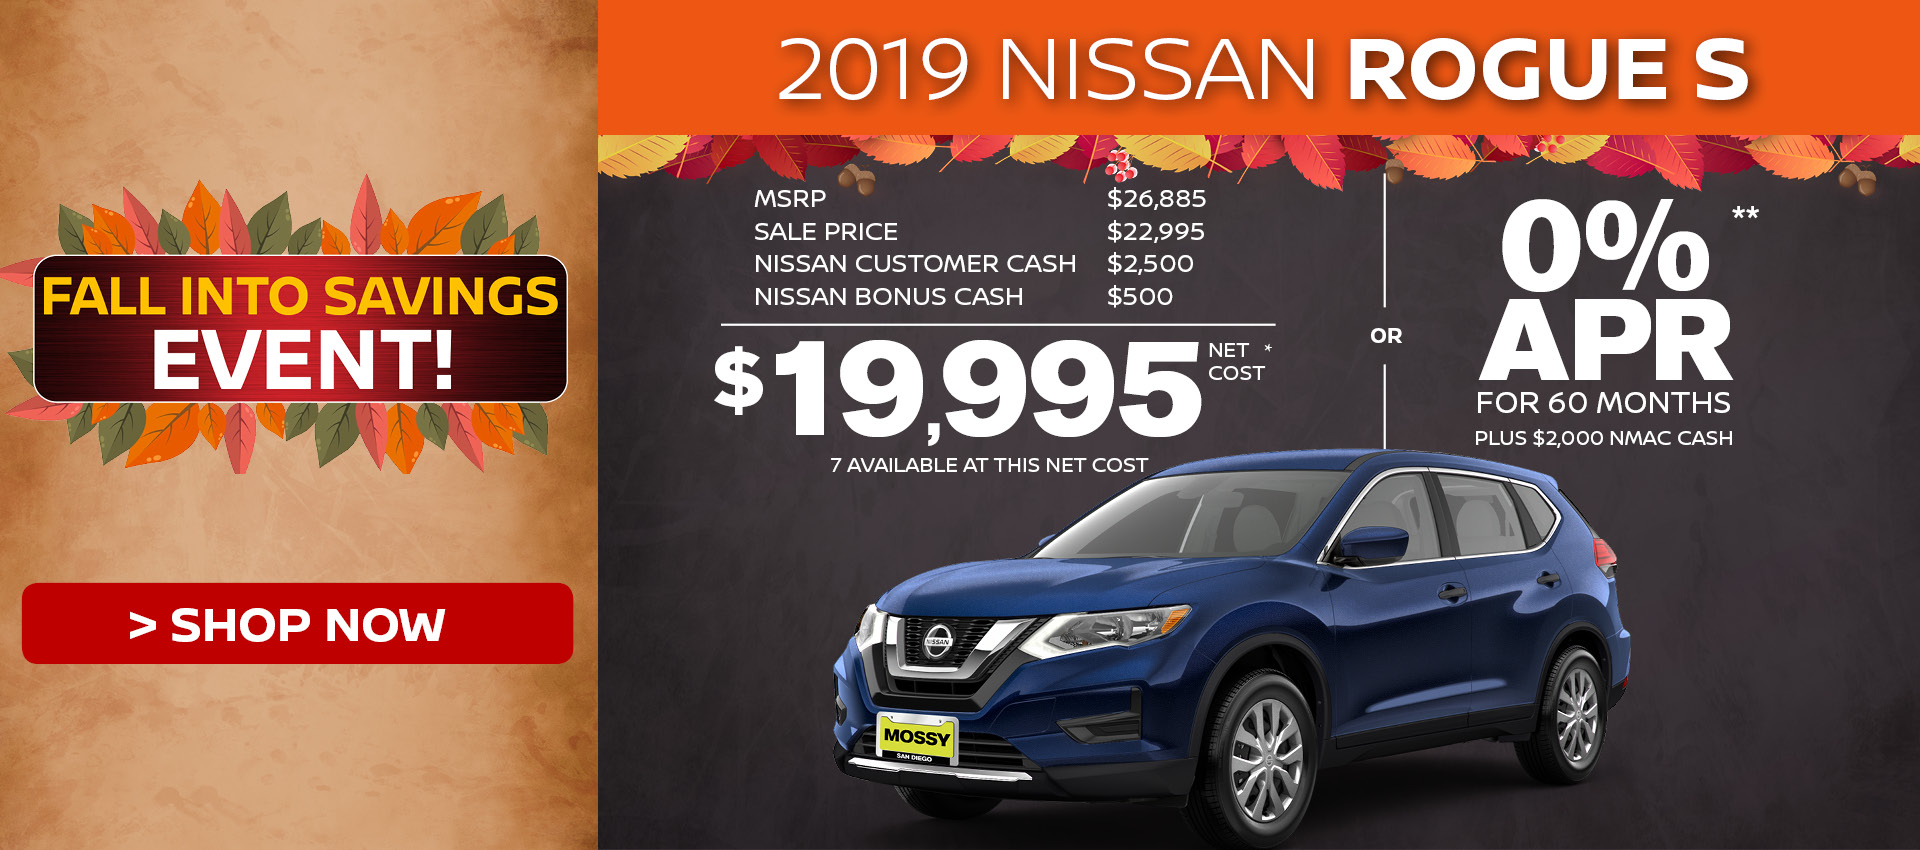 Mossy Nissan - Nissan Rogue S $19,995 Purchase HP